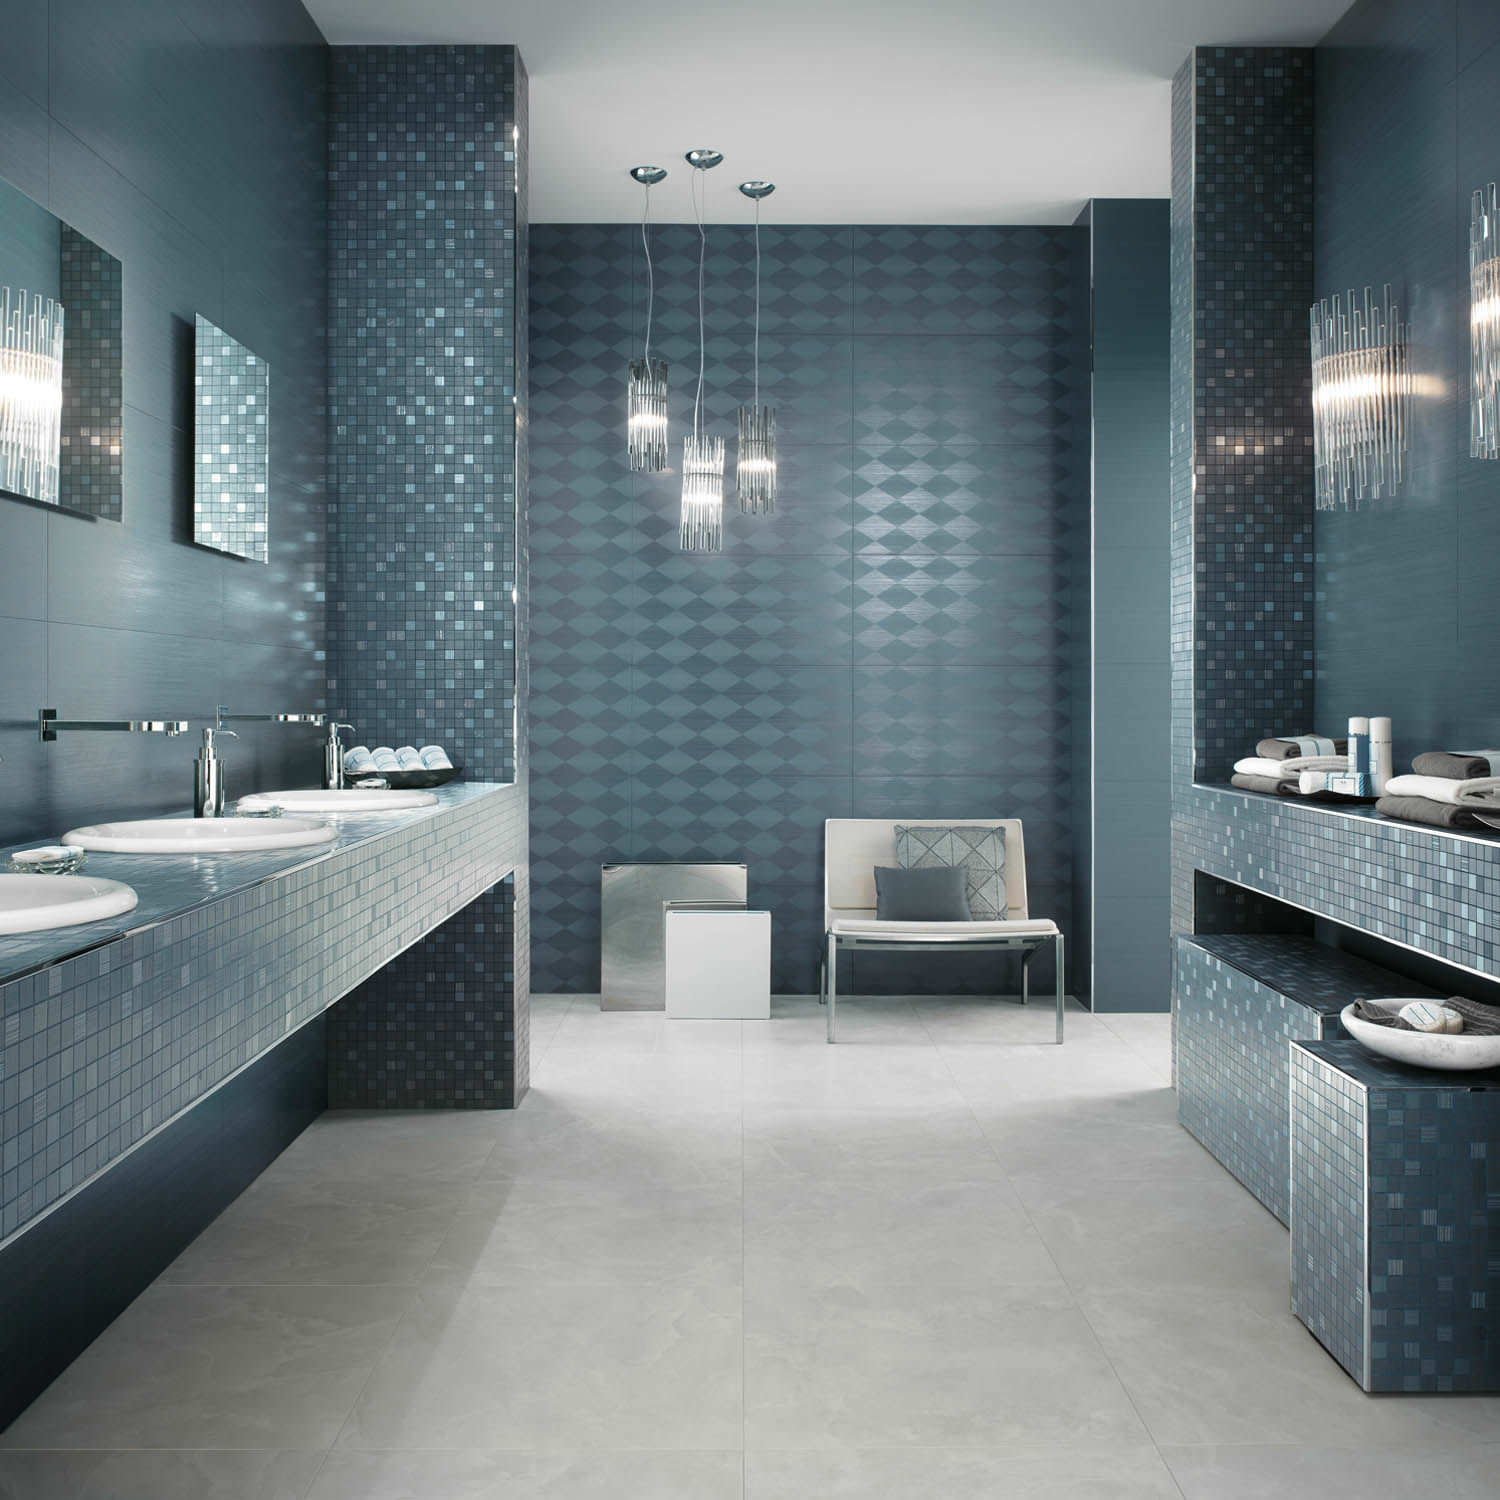 youll rarely find traditional bathroom tiles in a modern bathfew white subway tiles or four inch squares here instead you may spot oversize limestone or